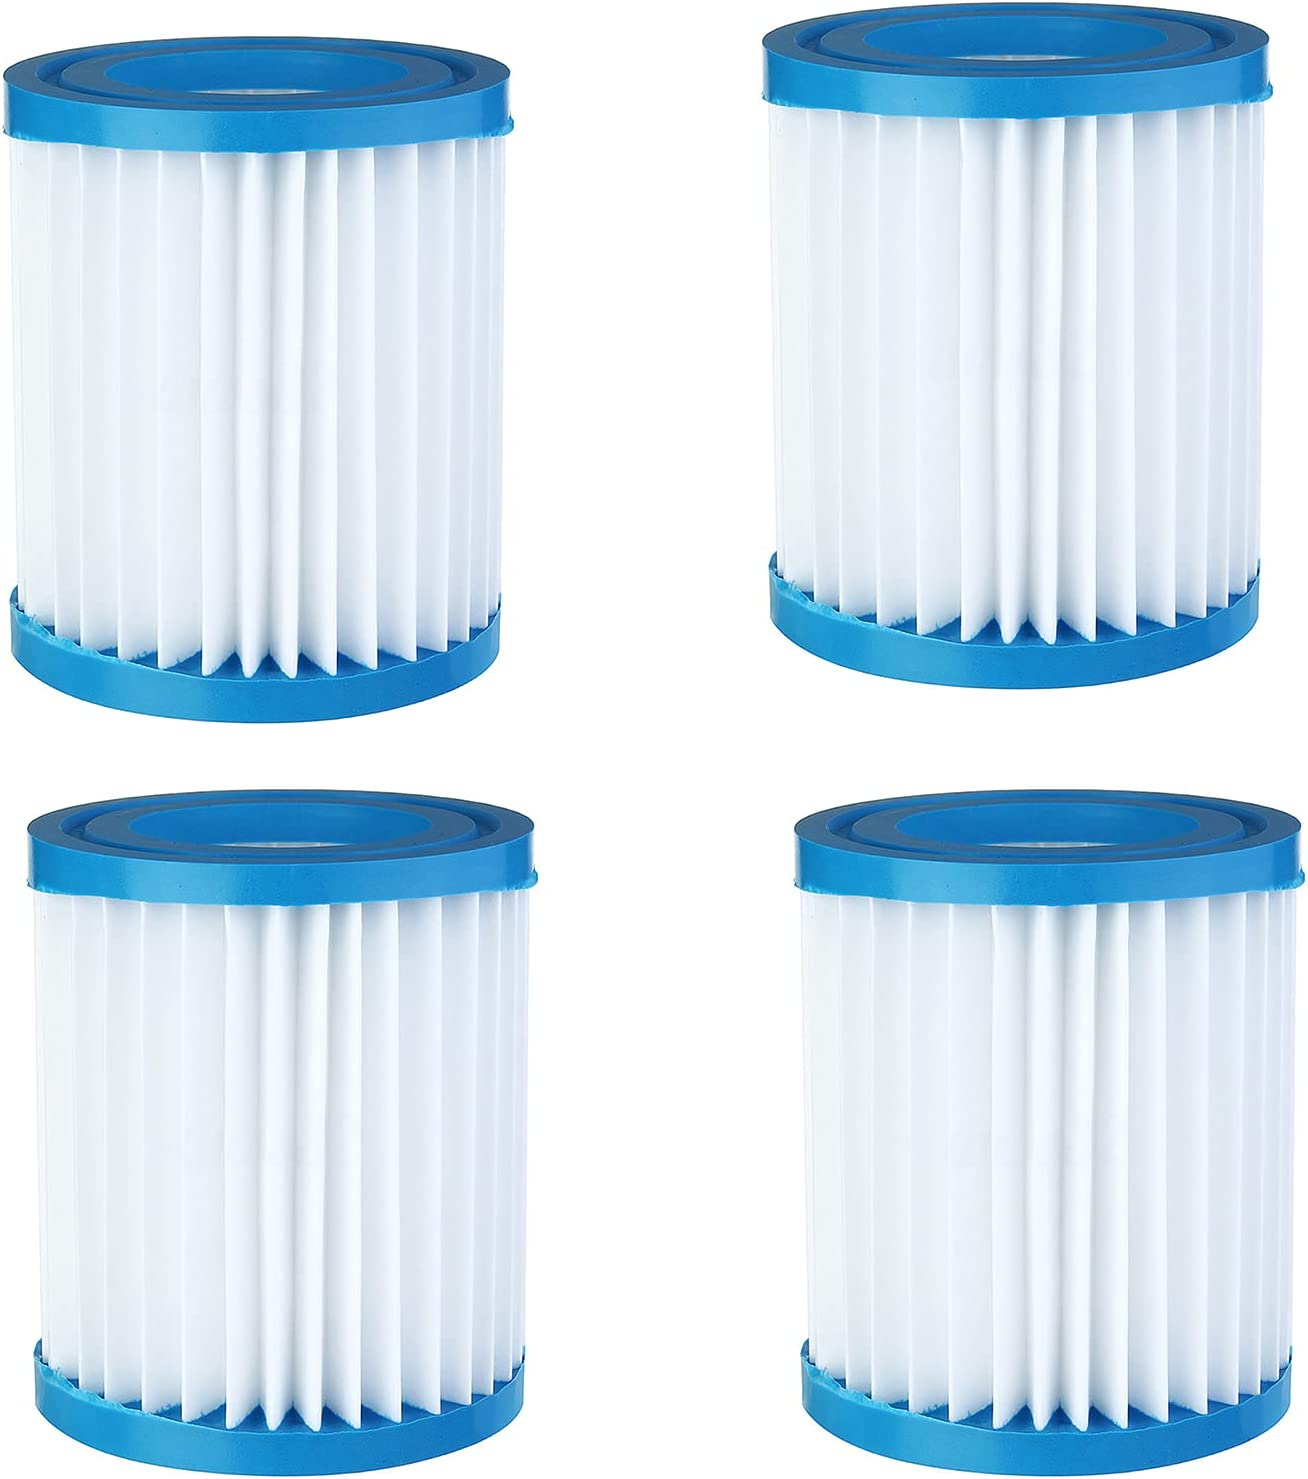 2 4 Pack Surprise price Free Shipping Cheap Bargain Gift Pool Cartridge Filter Spa Replacement